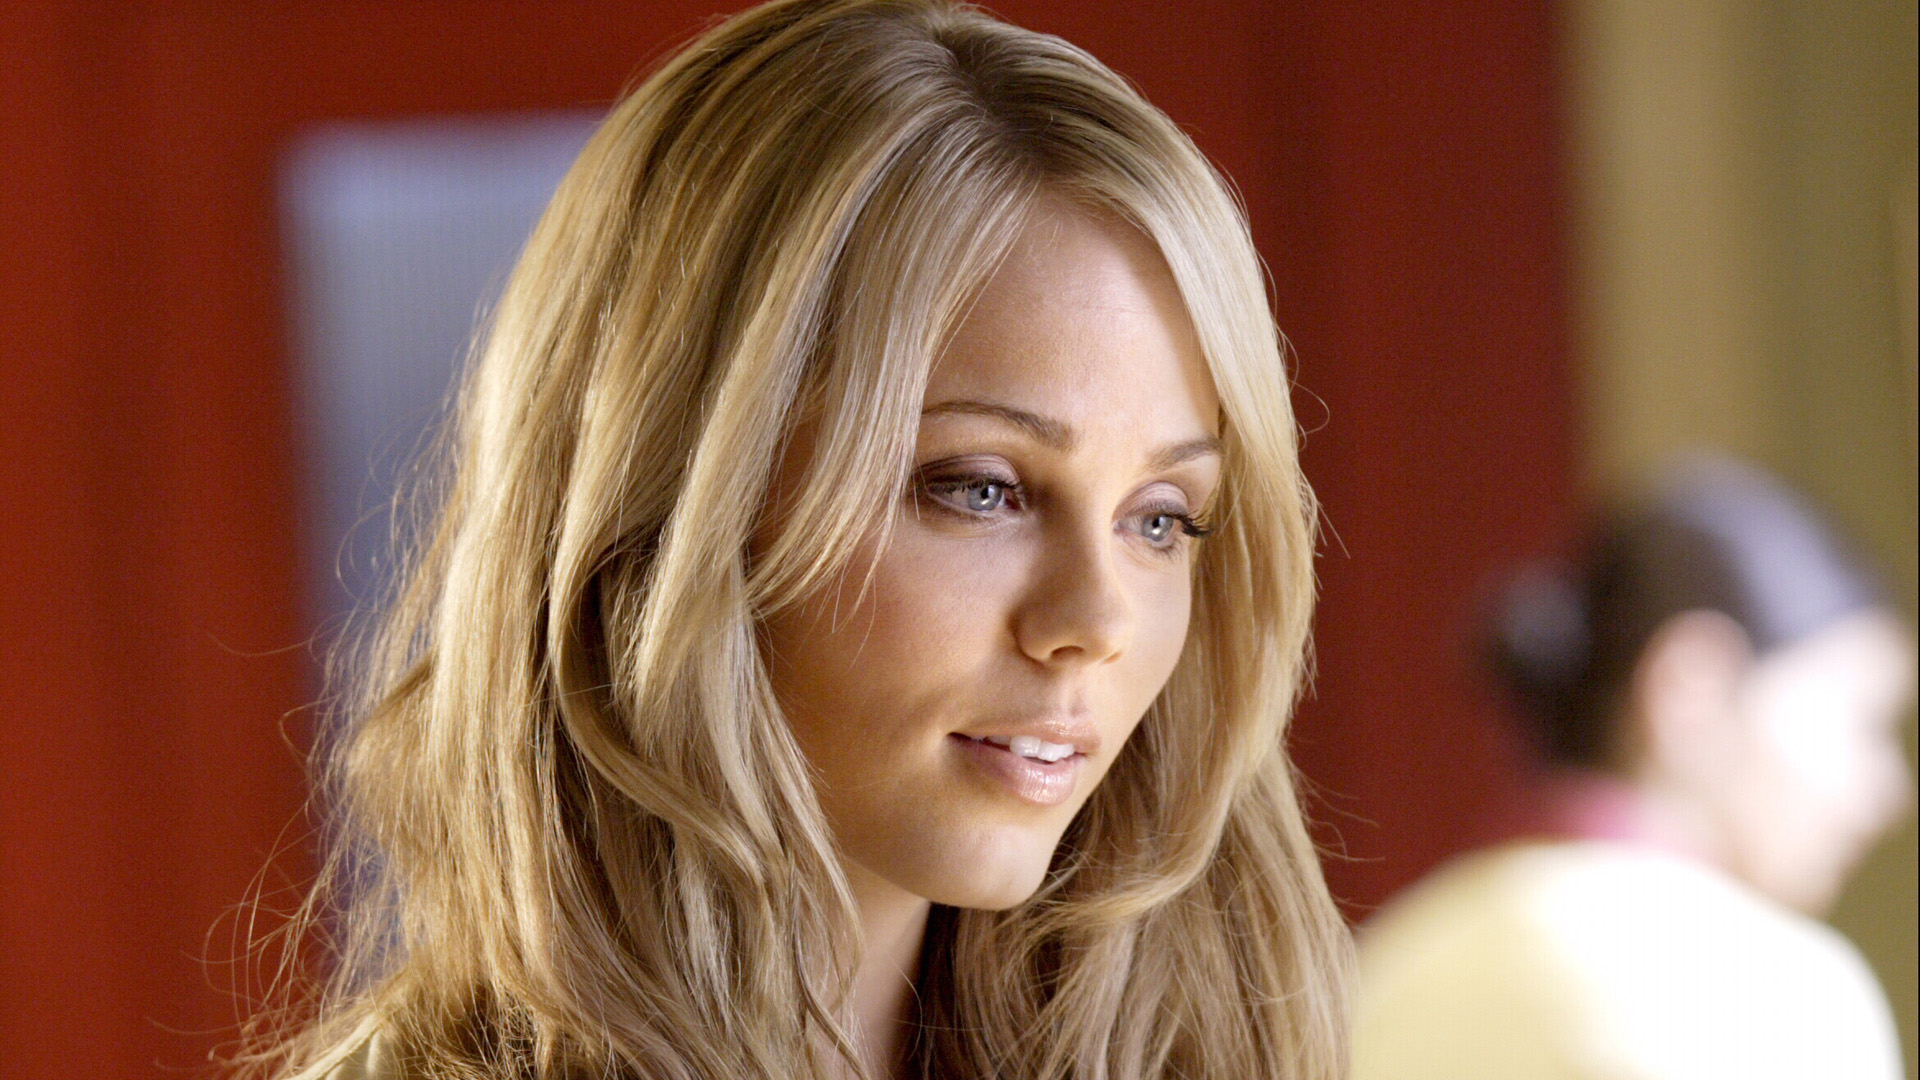 Laura Vandervoort HD wallpaper #824094